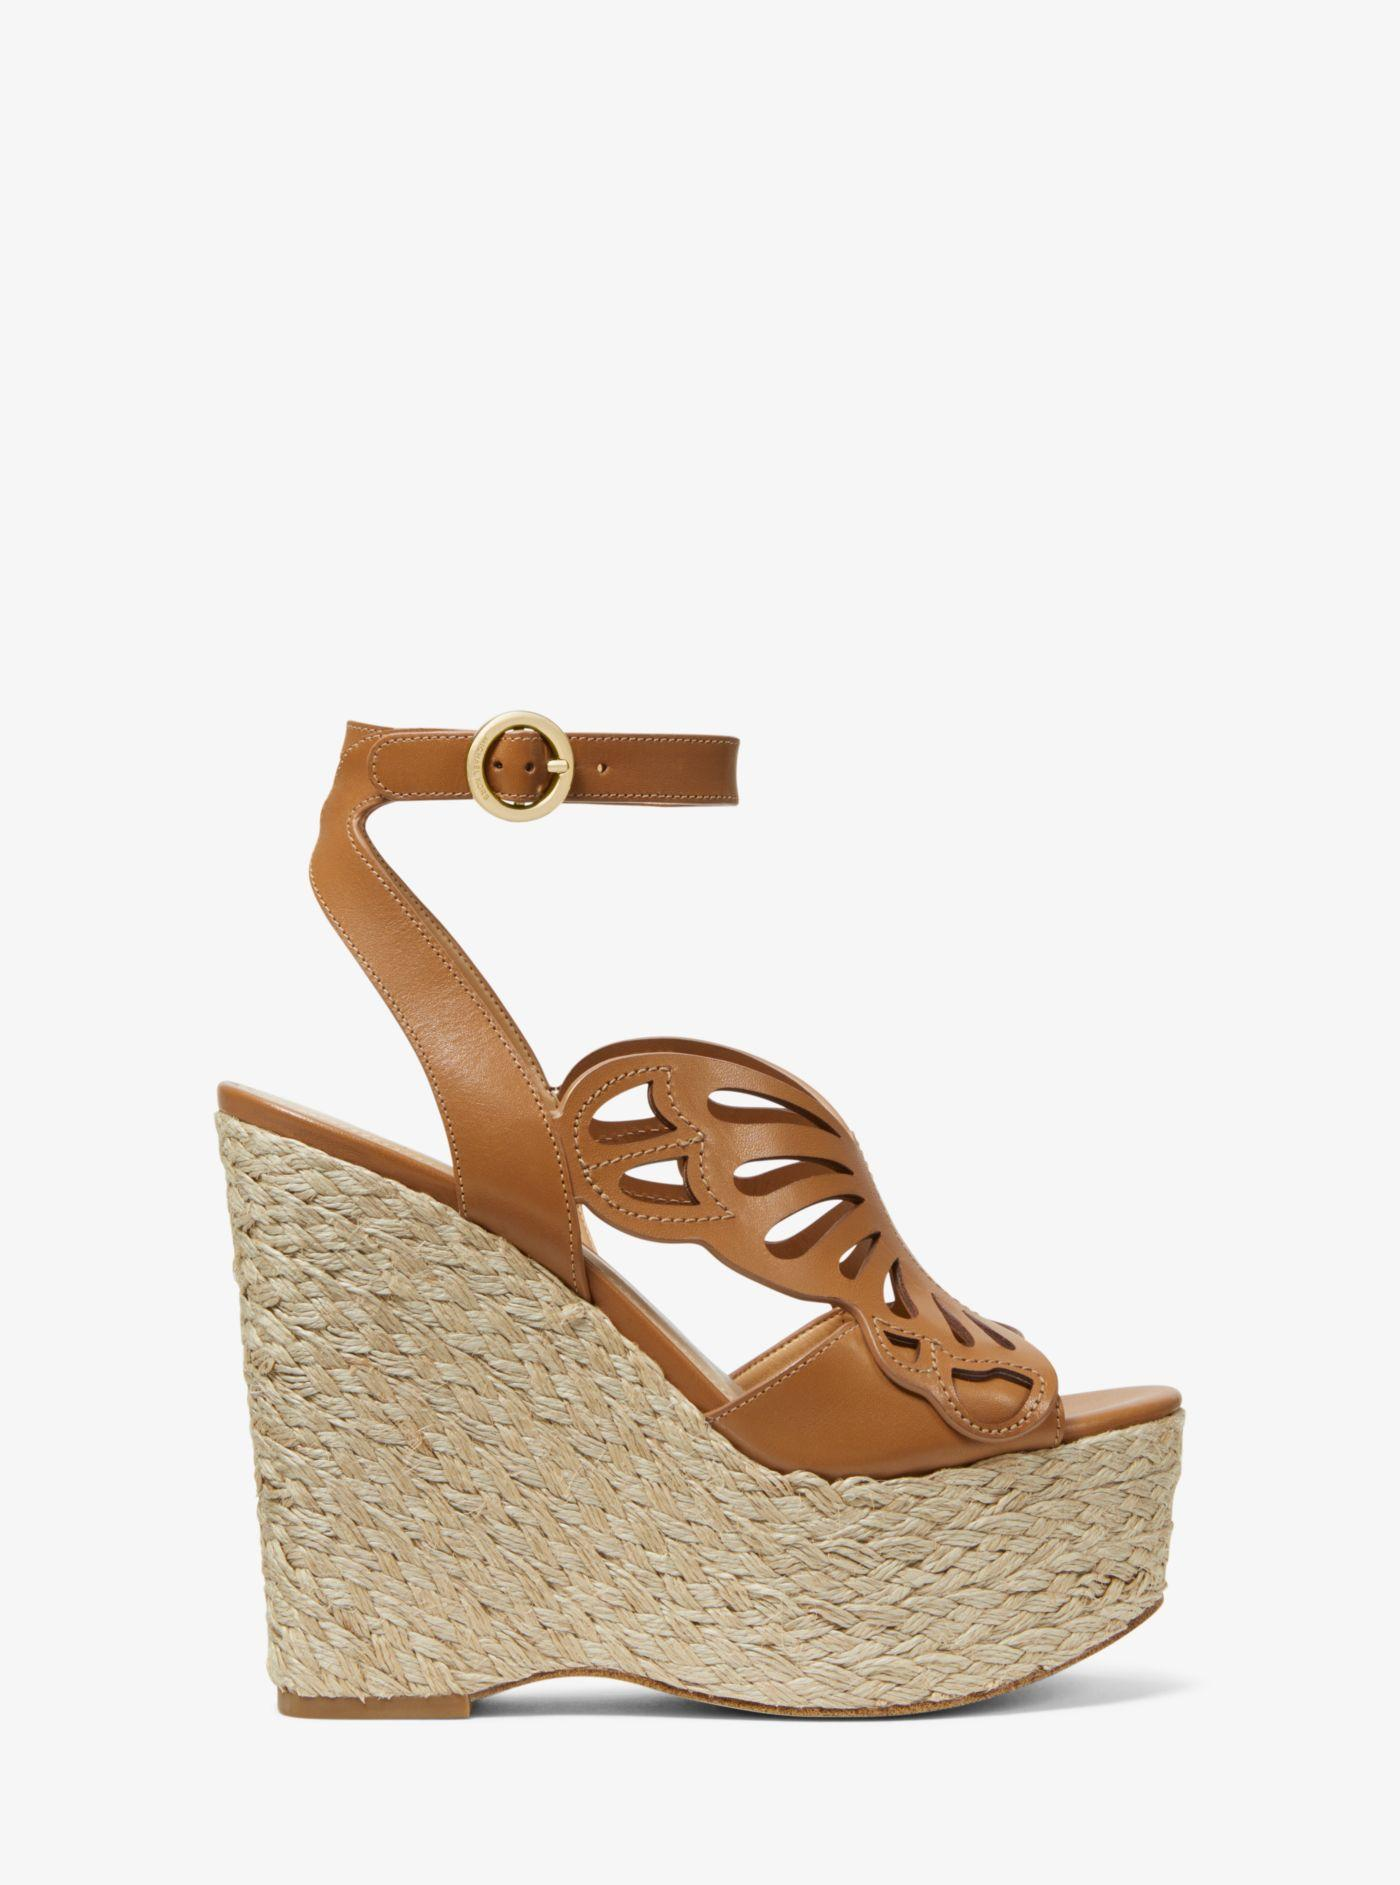 6666876874a7 Michael Kors - Multicolor Felicity Leather Butterfly Wedge - Lyst. View  fullscreen